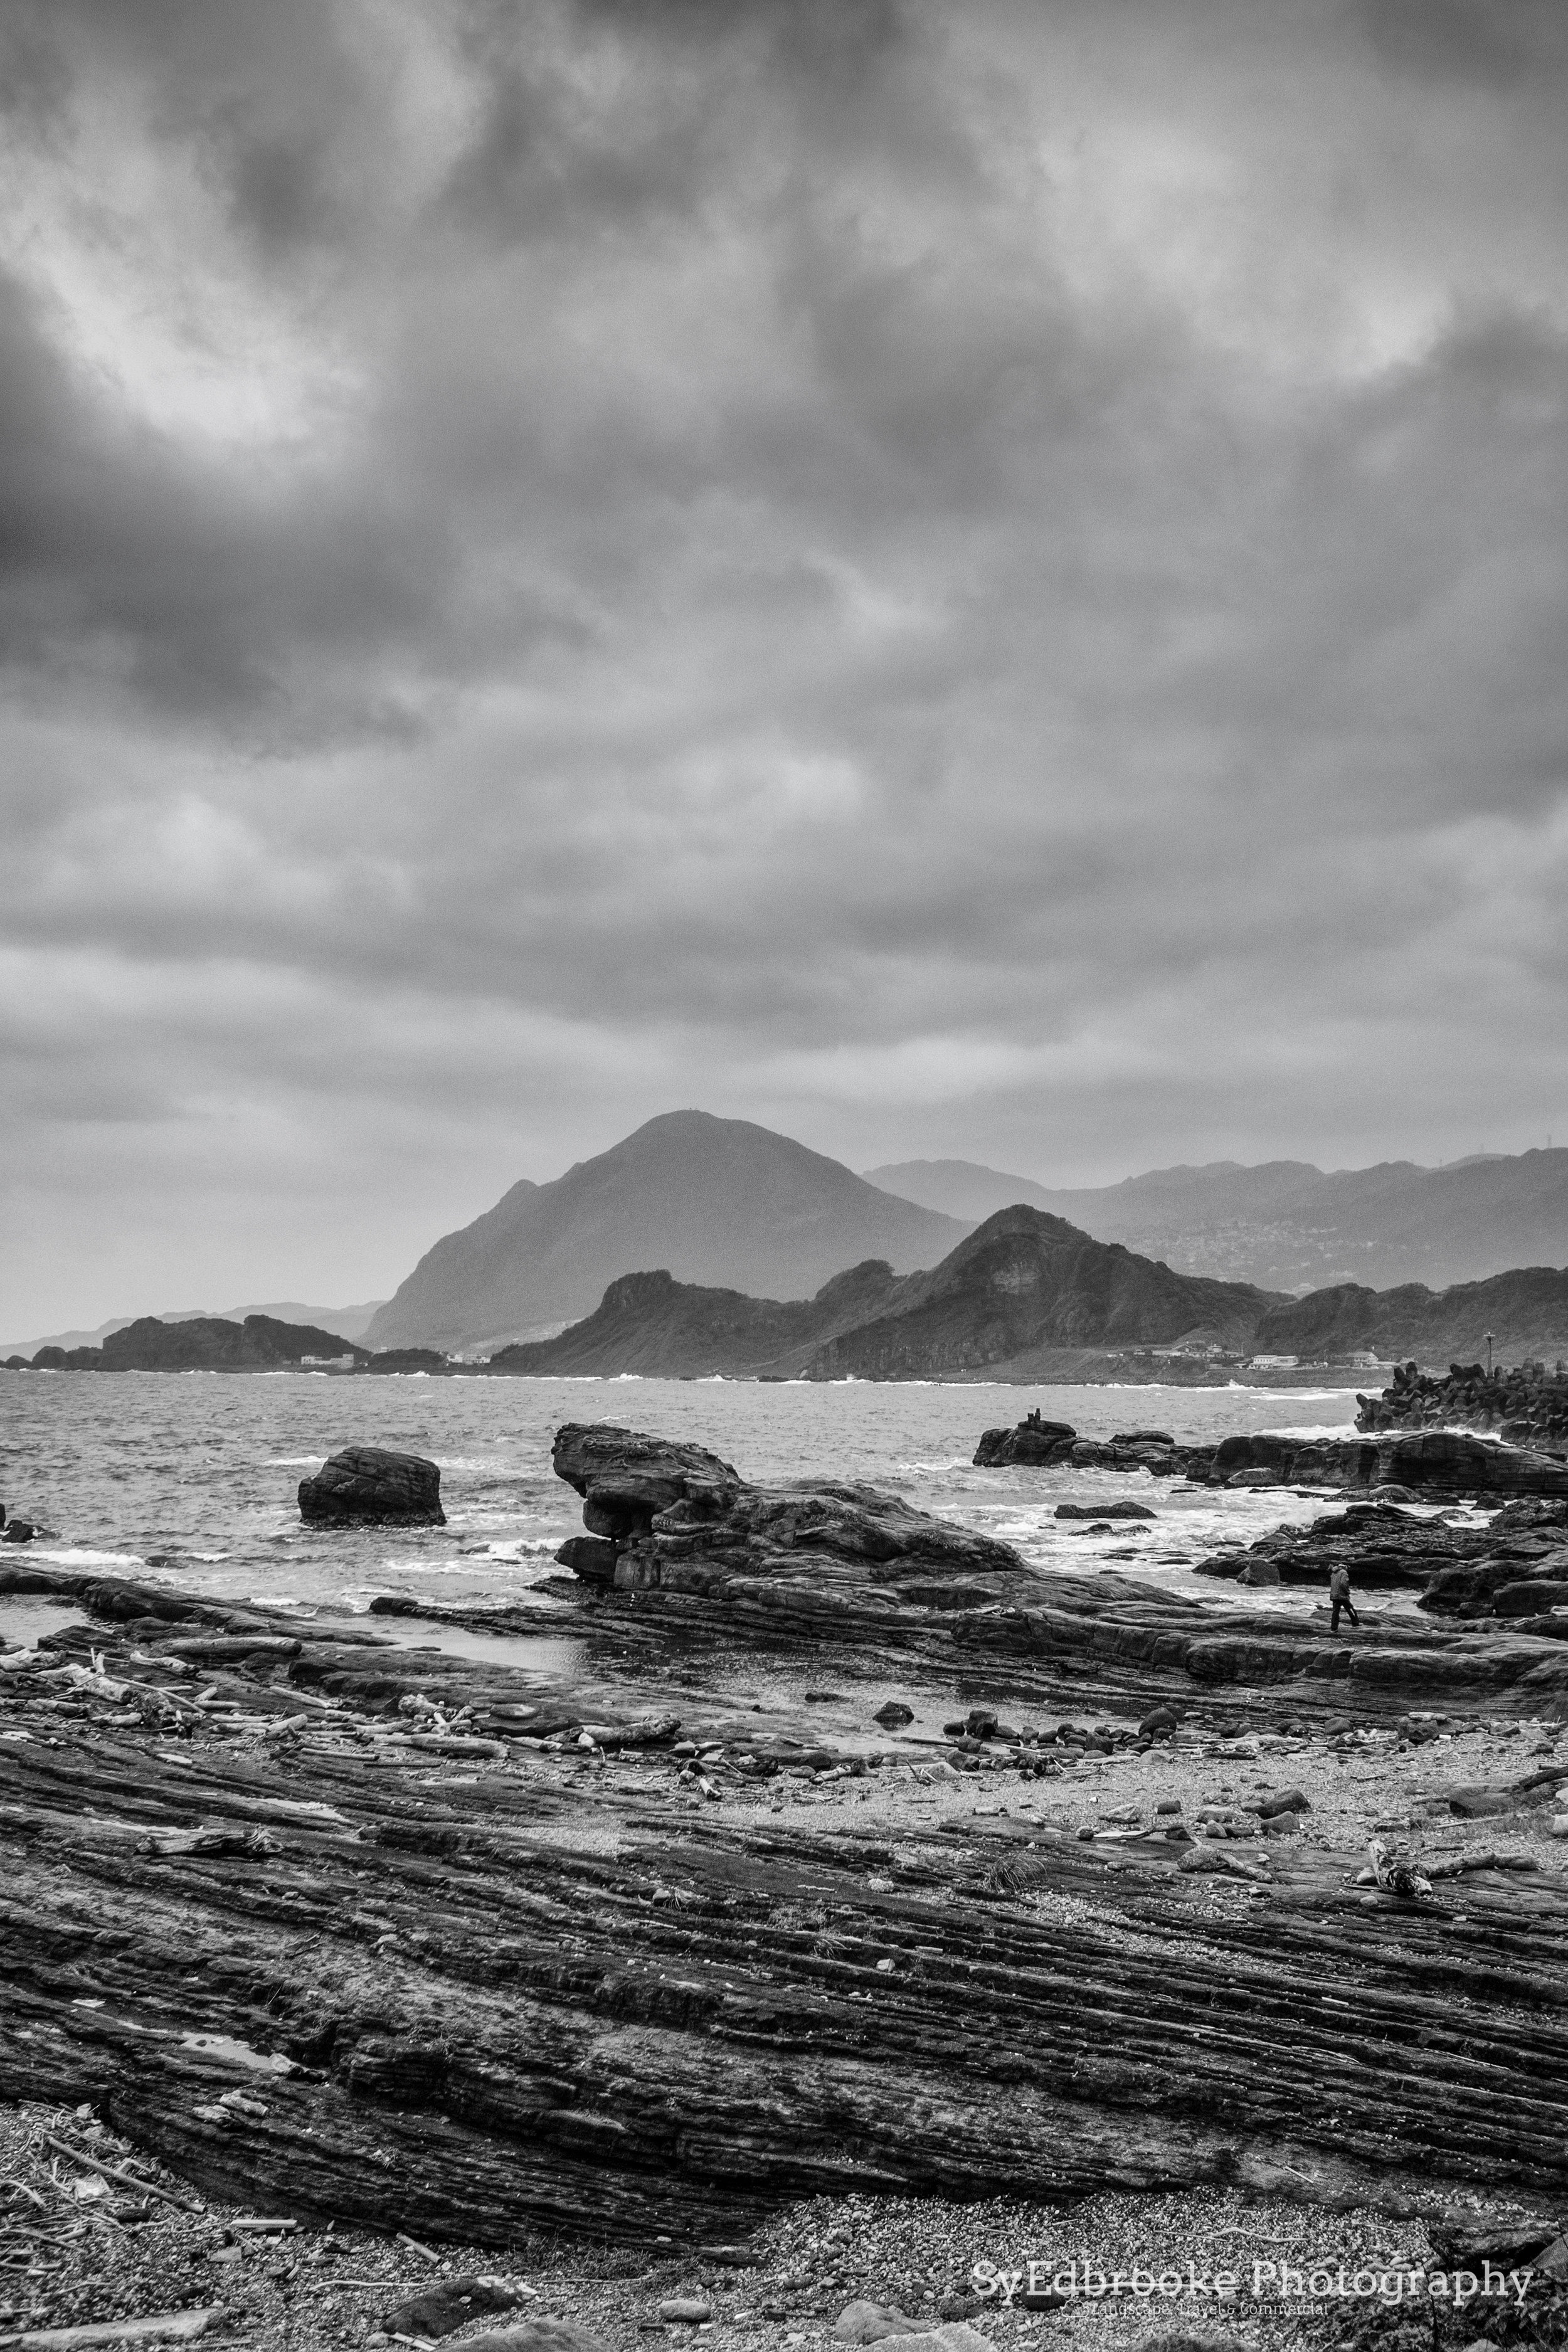 Elephant Rock headland with Mt Keelung in the background. f1.8, ISO 200, 1/1600, 35mm